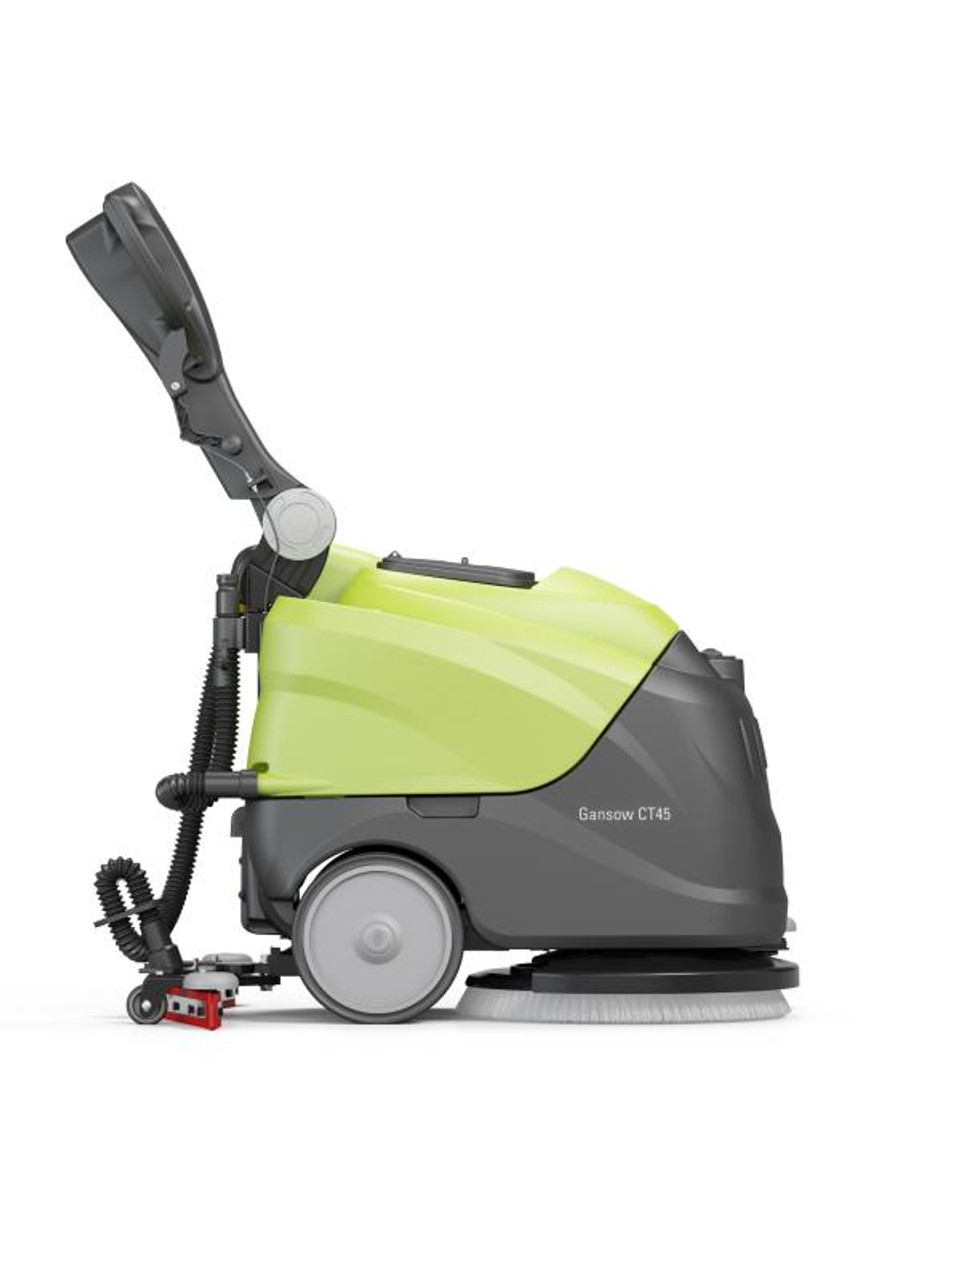 The IPC CT45 is built to last with a high density polyethylene shell.